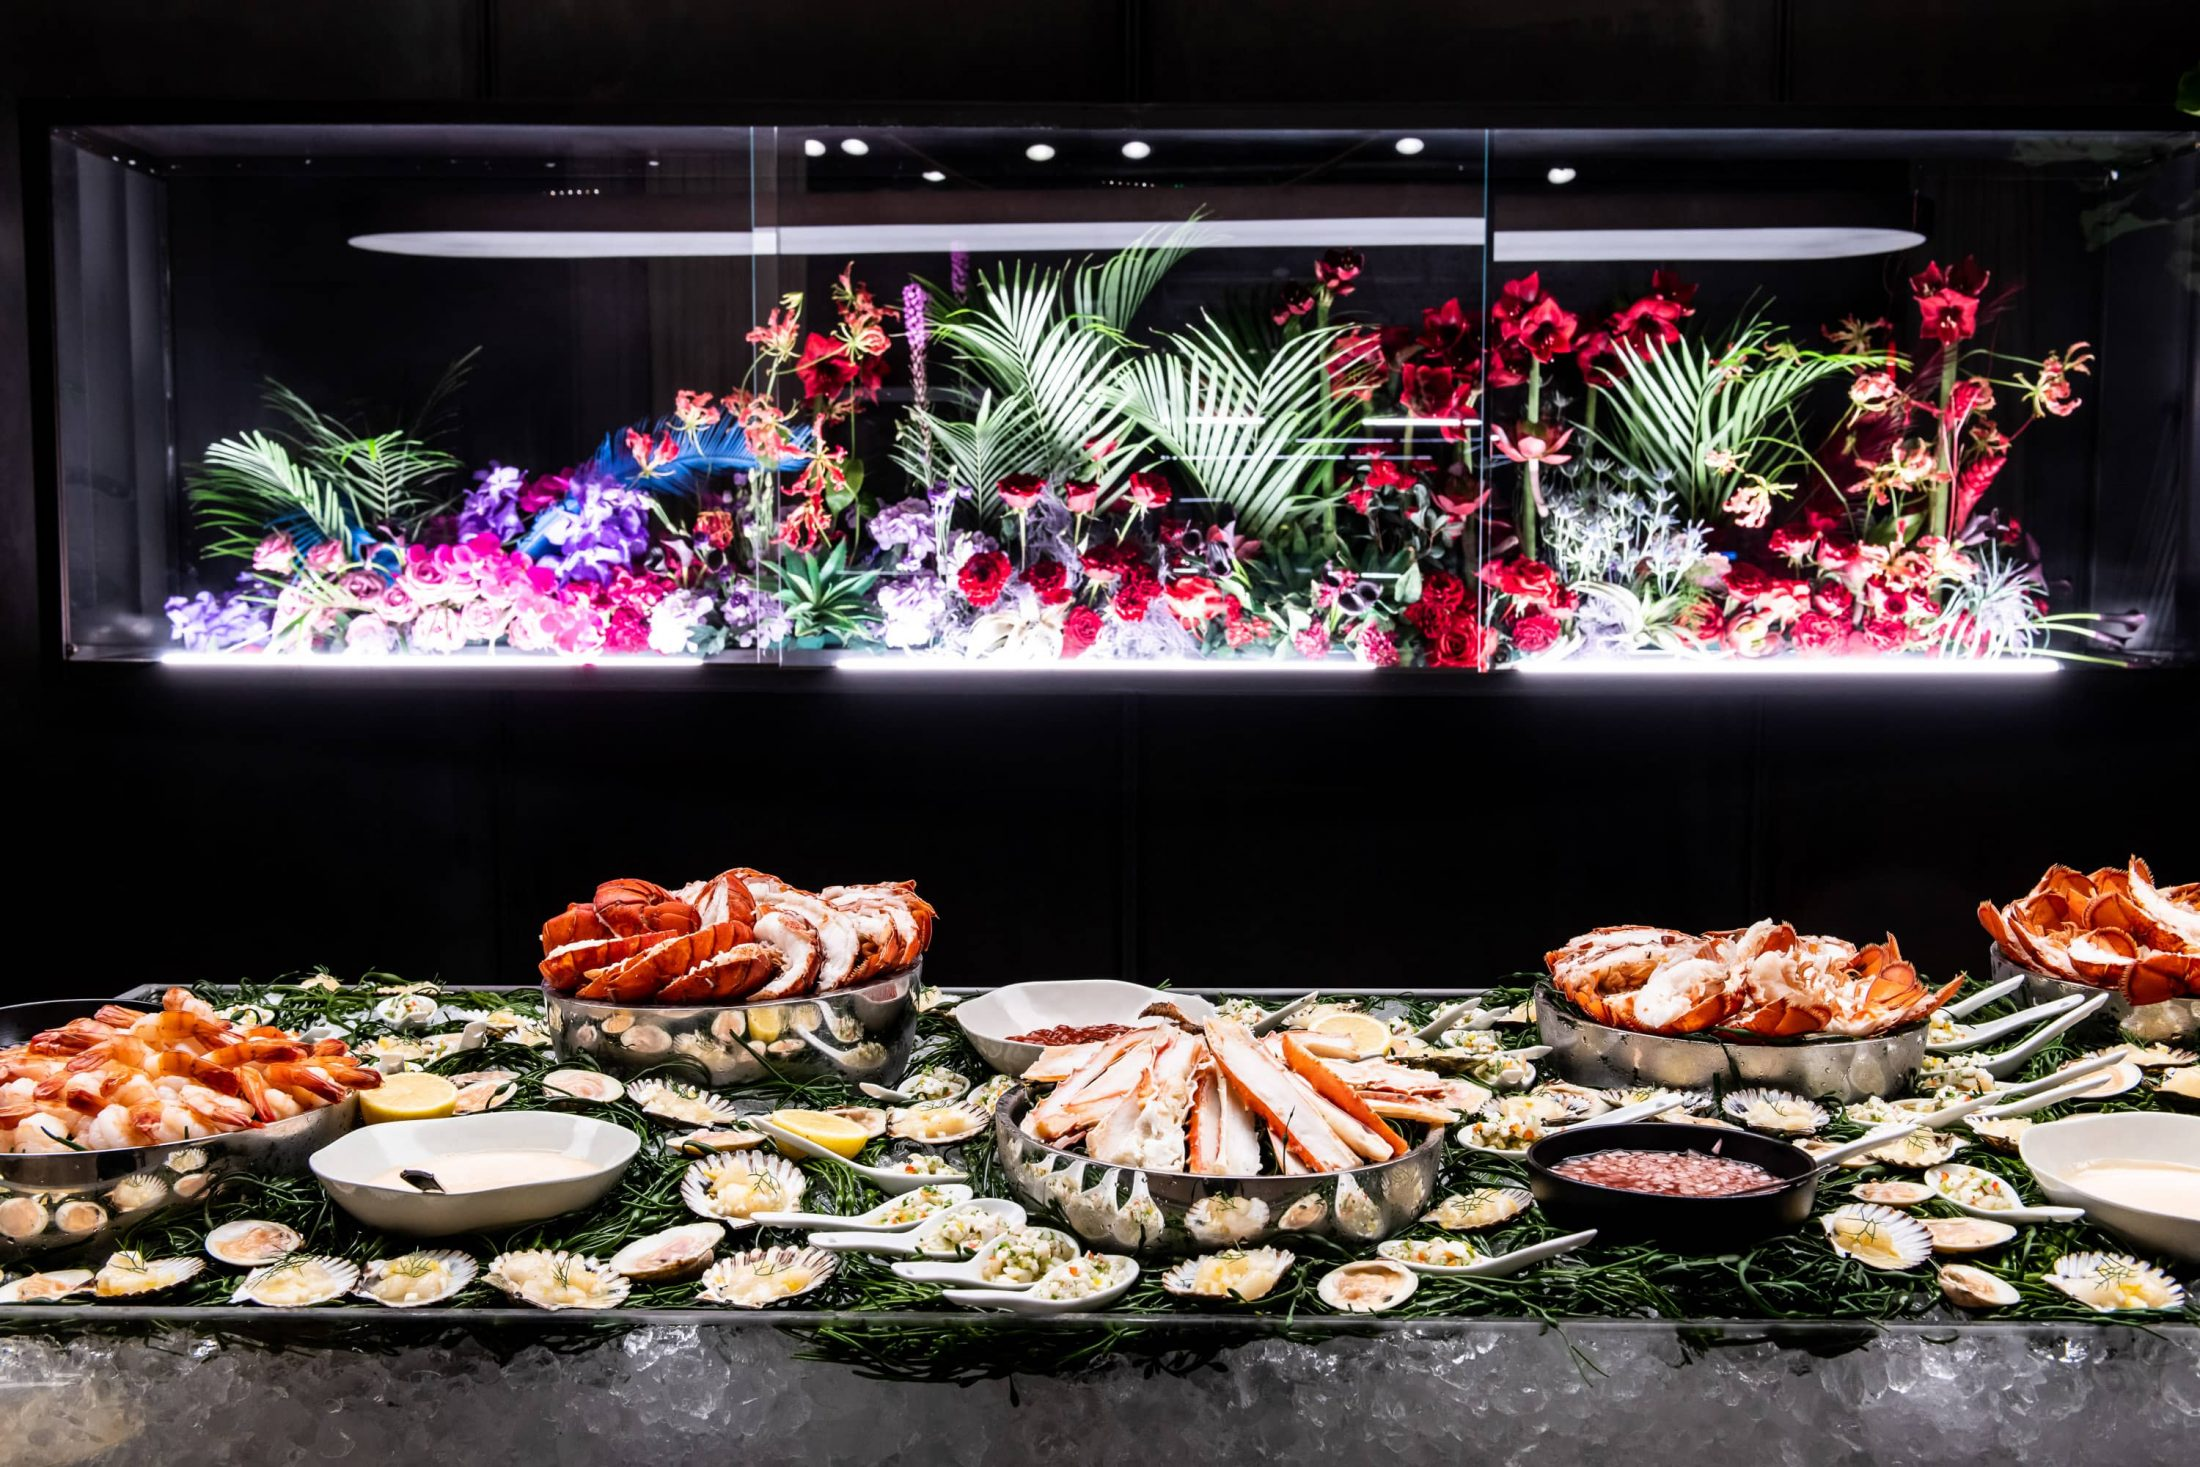 Seafood bar at this NYE wedding in New York City | Photo by Gruber Photo